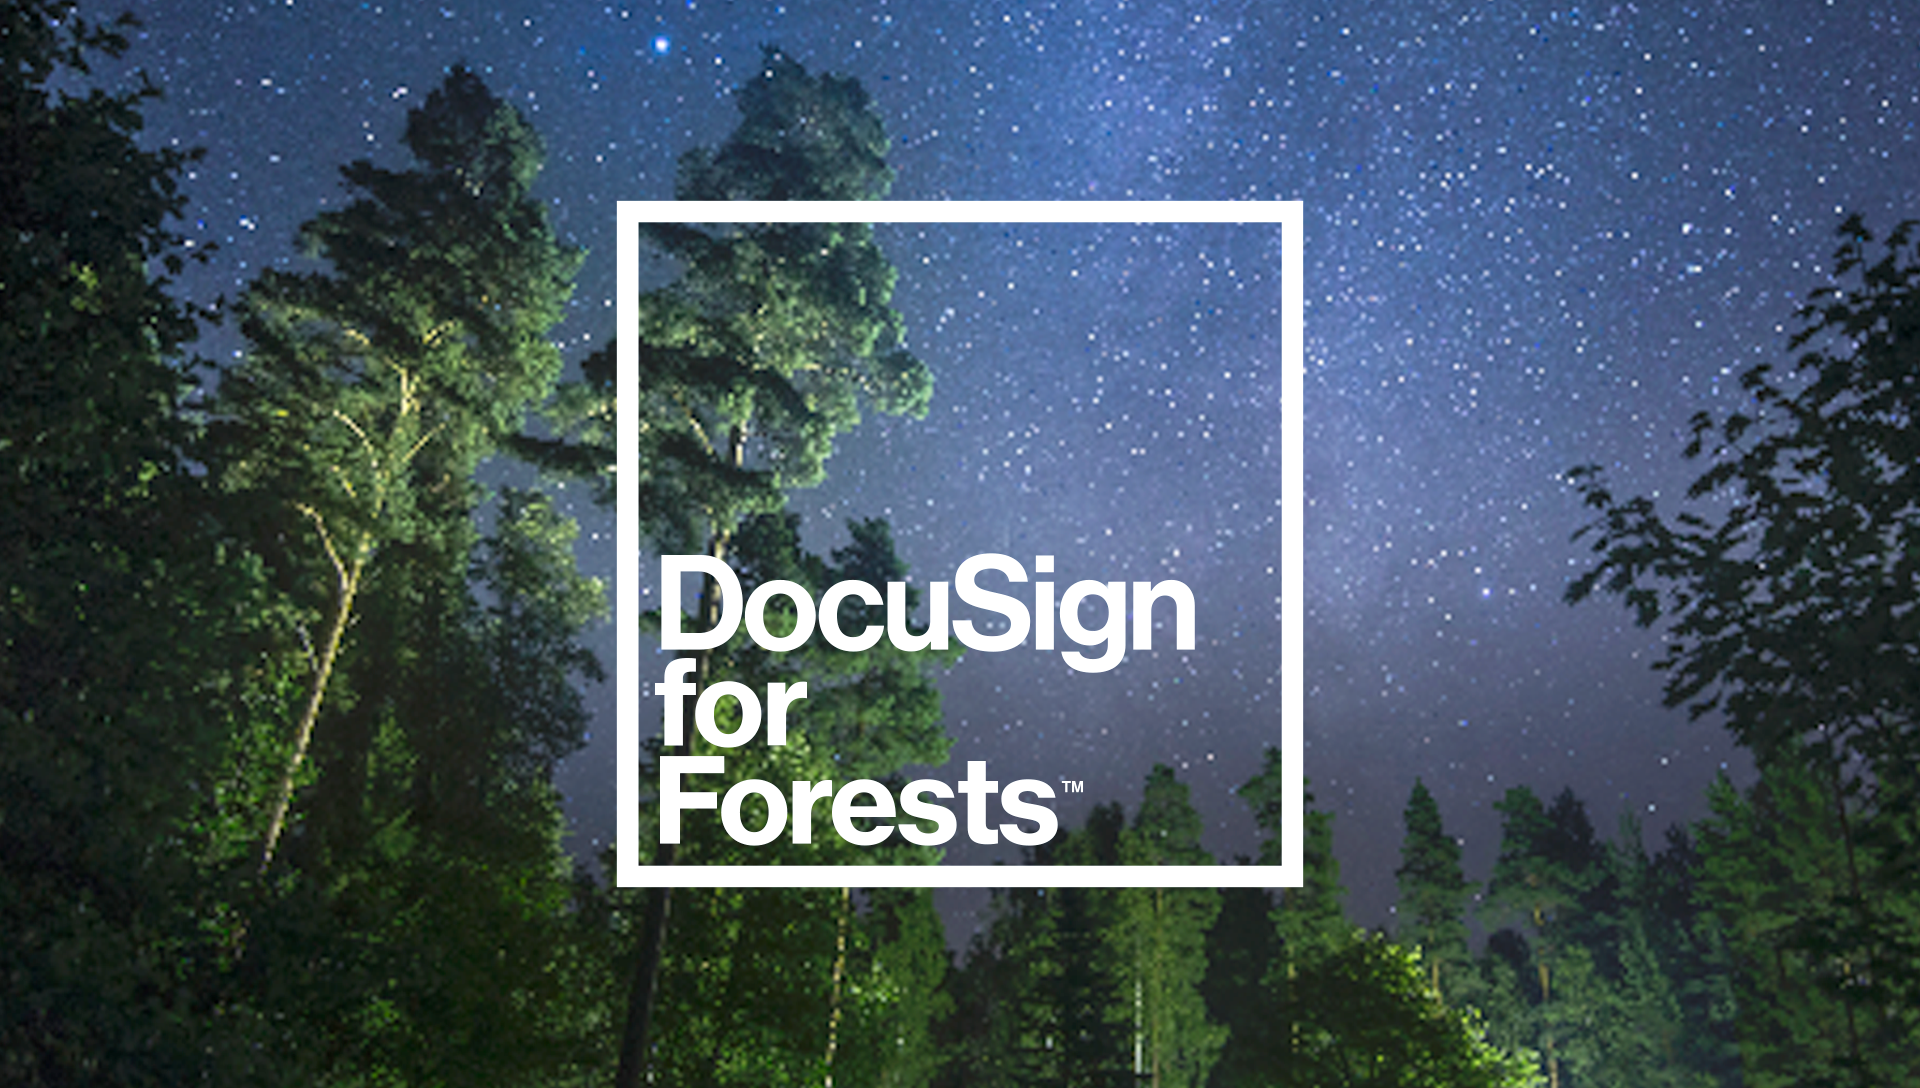 DocuSign for Forests schermafbeelding